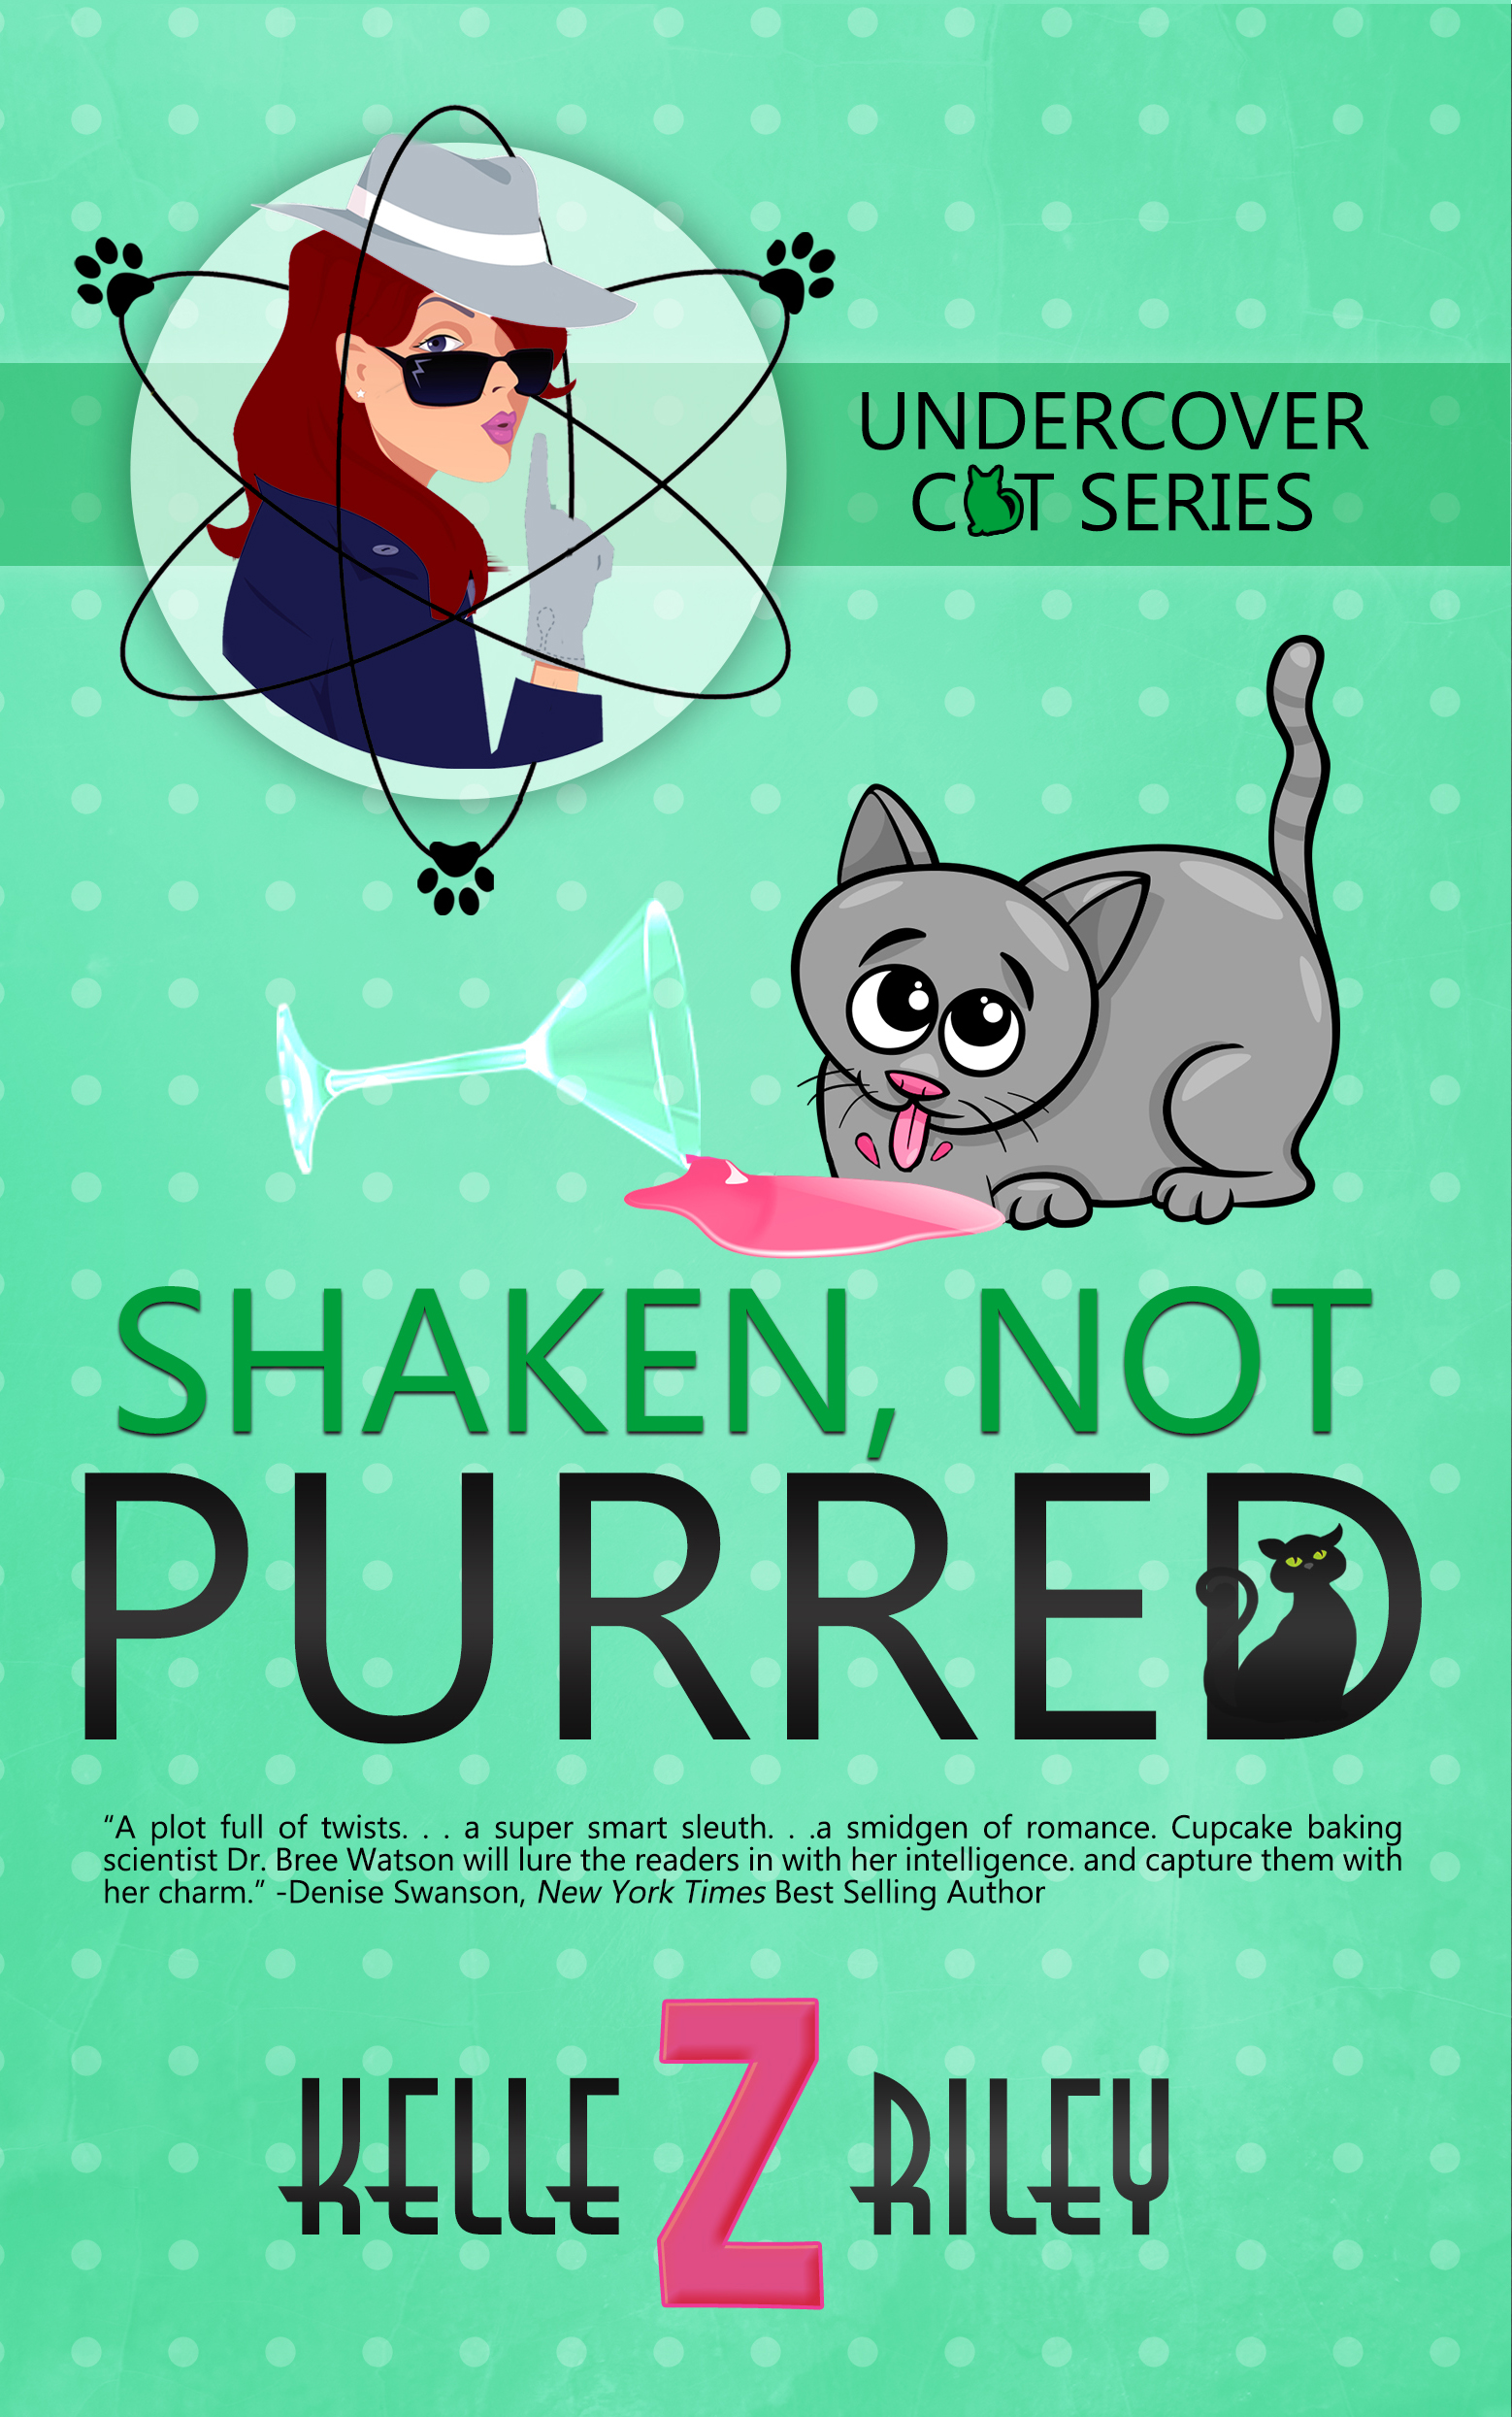 Shaken_Not_Purred_ebook cover.jpg